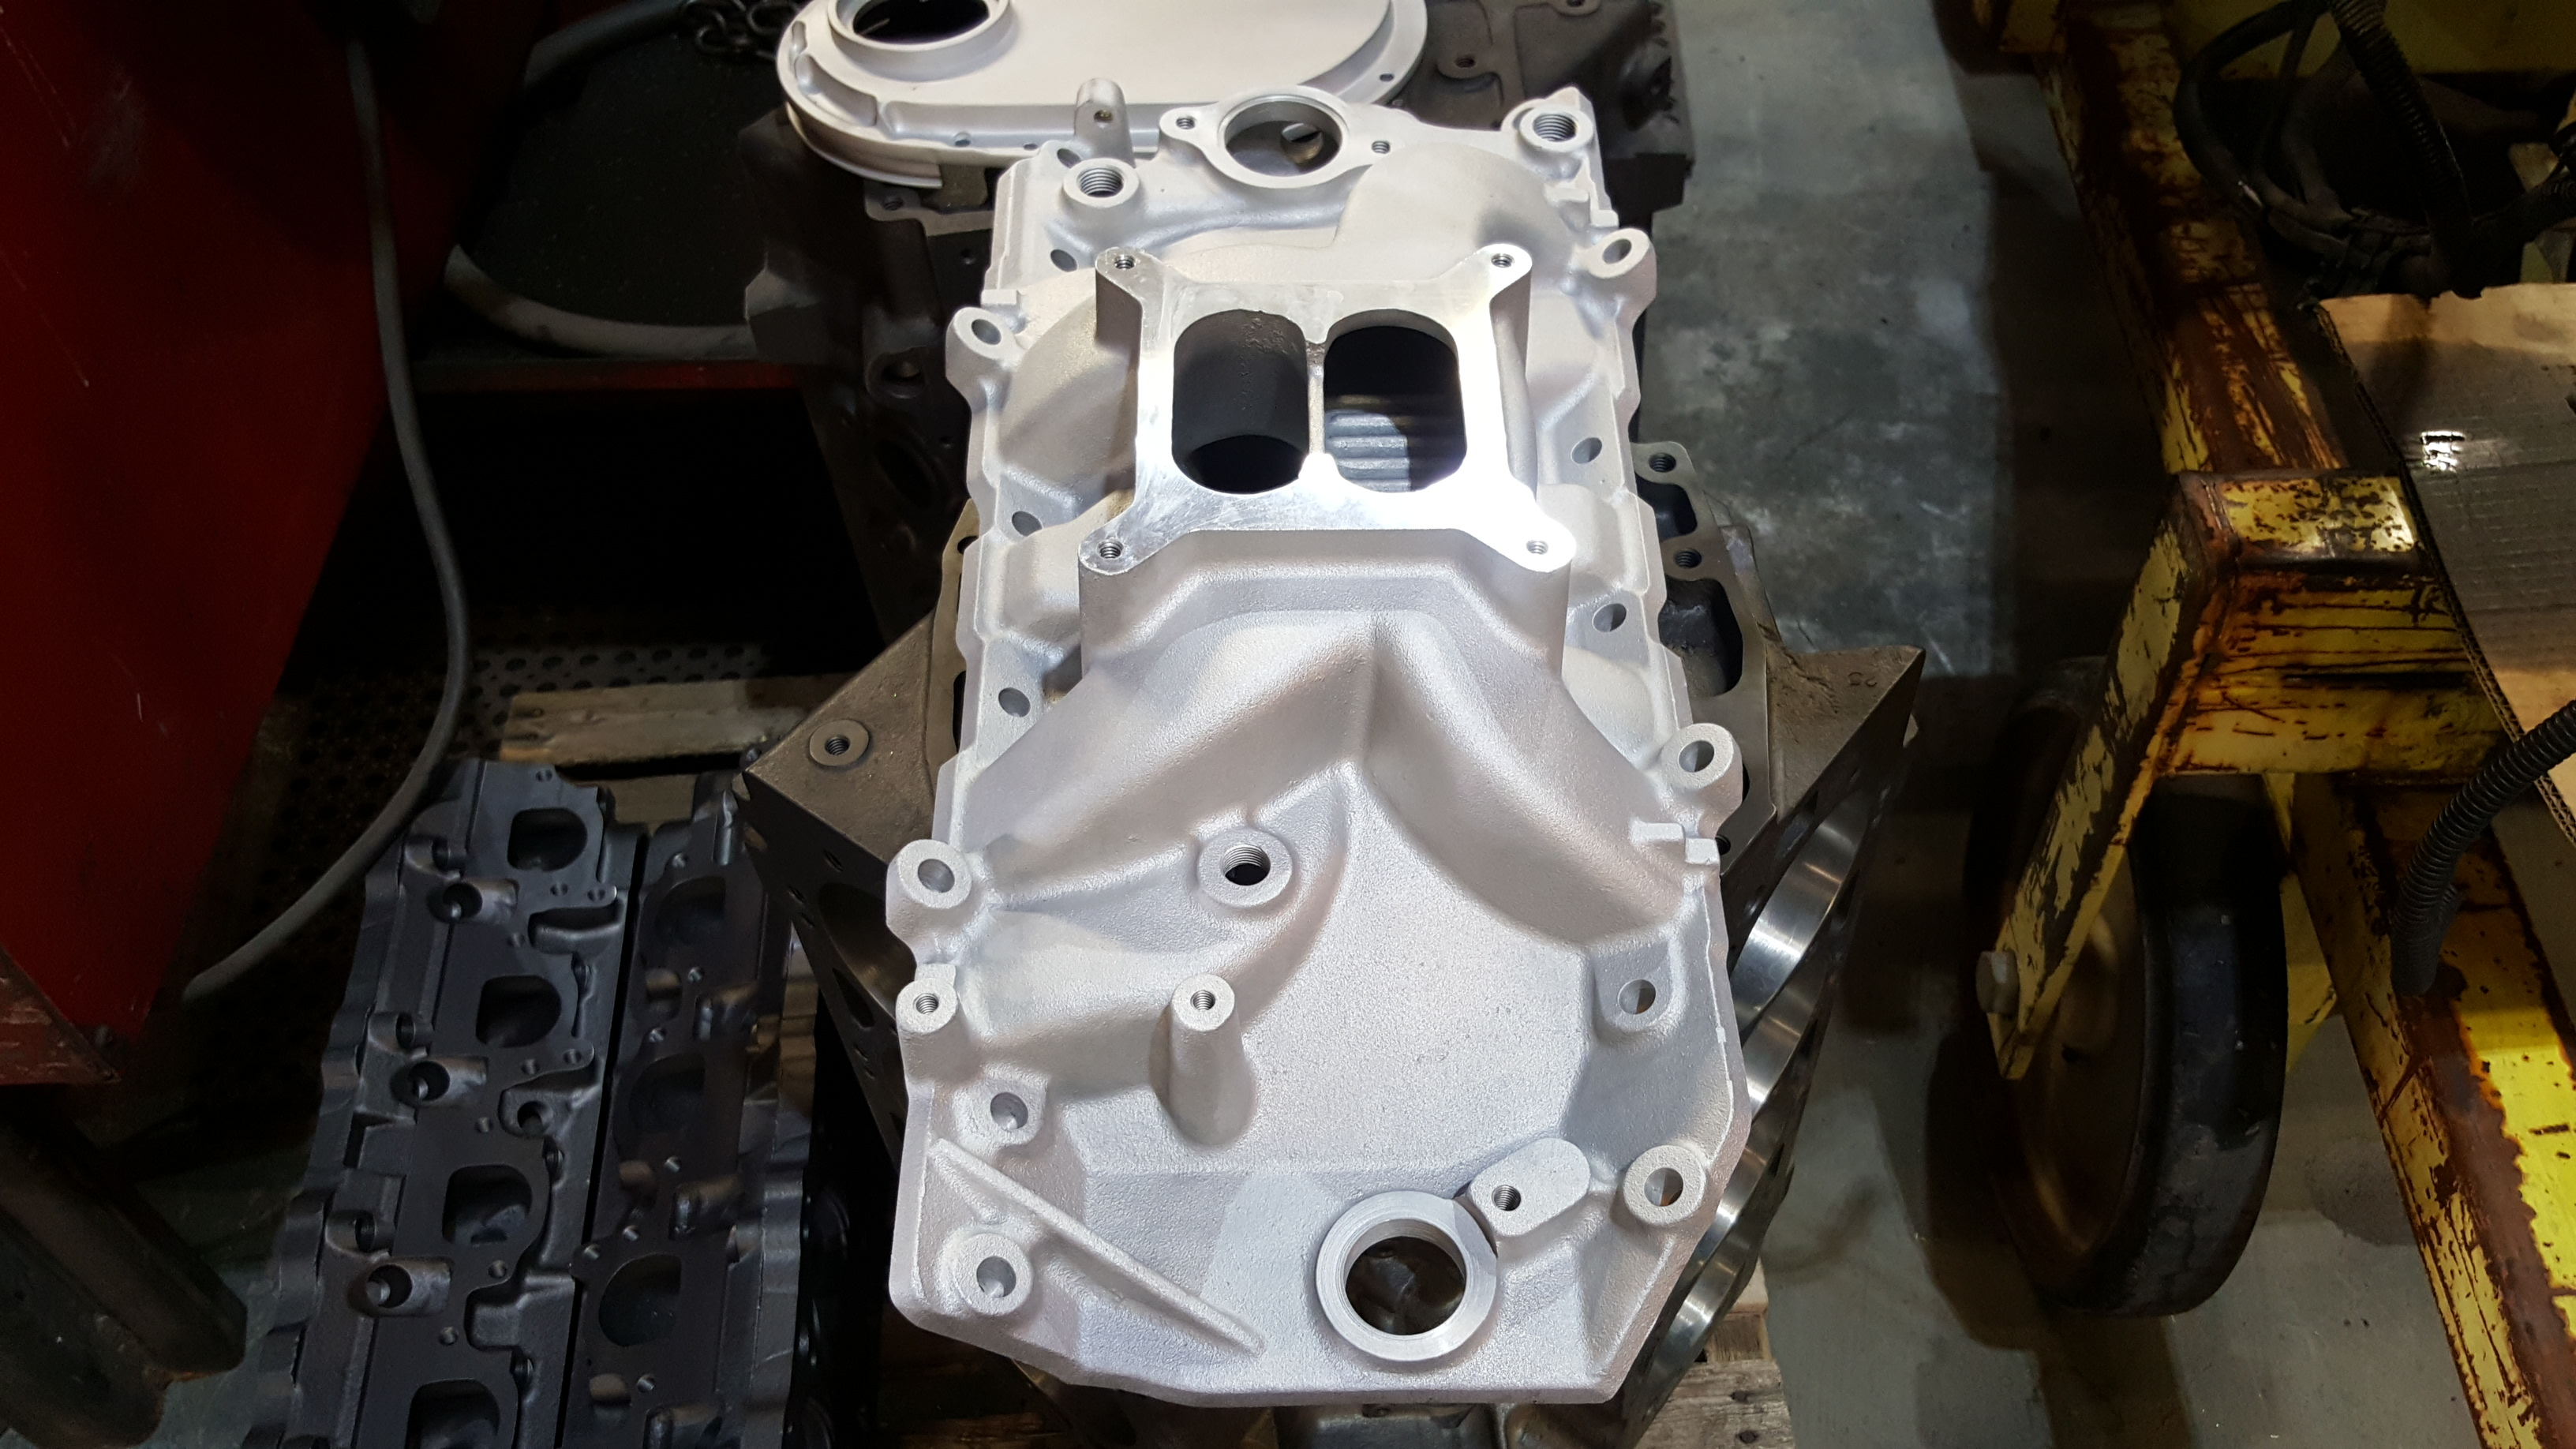 Big Block Chevy Rat Motor Engine Build Parts Ready For Powder Coating